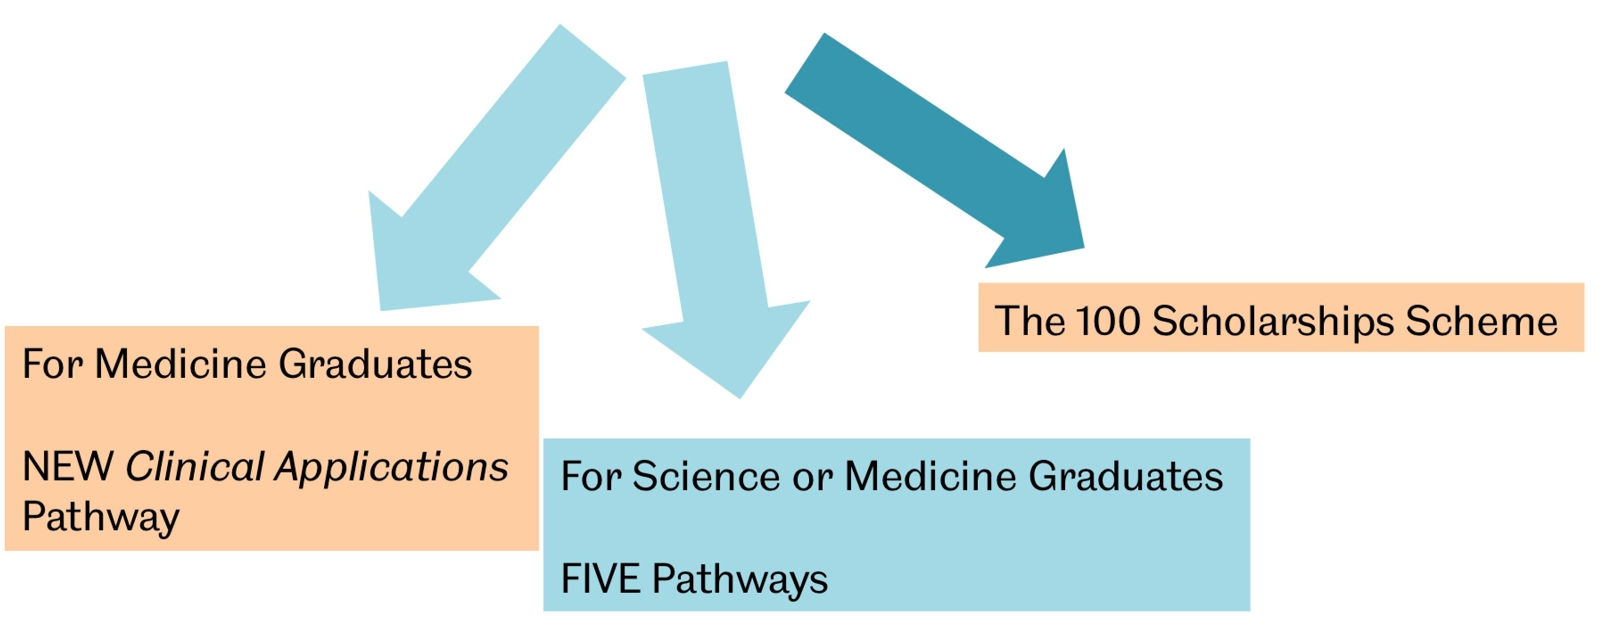 Clinical Applications pathways